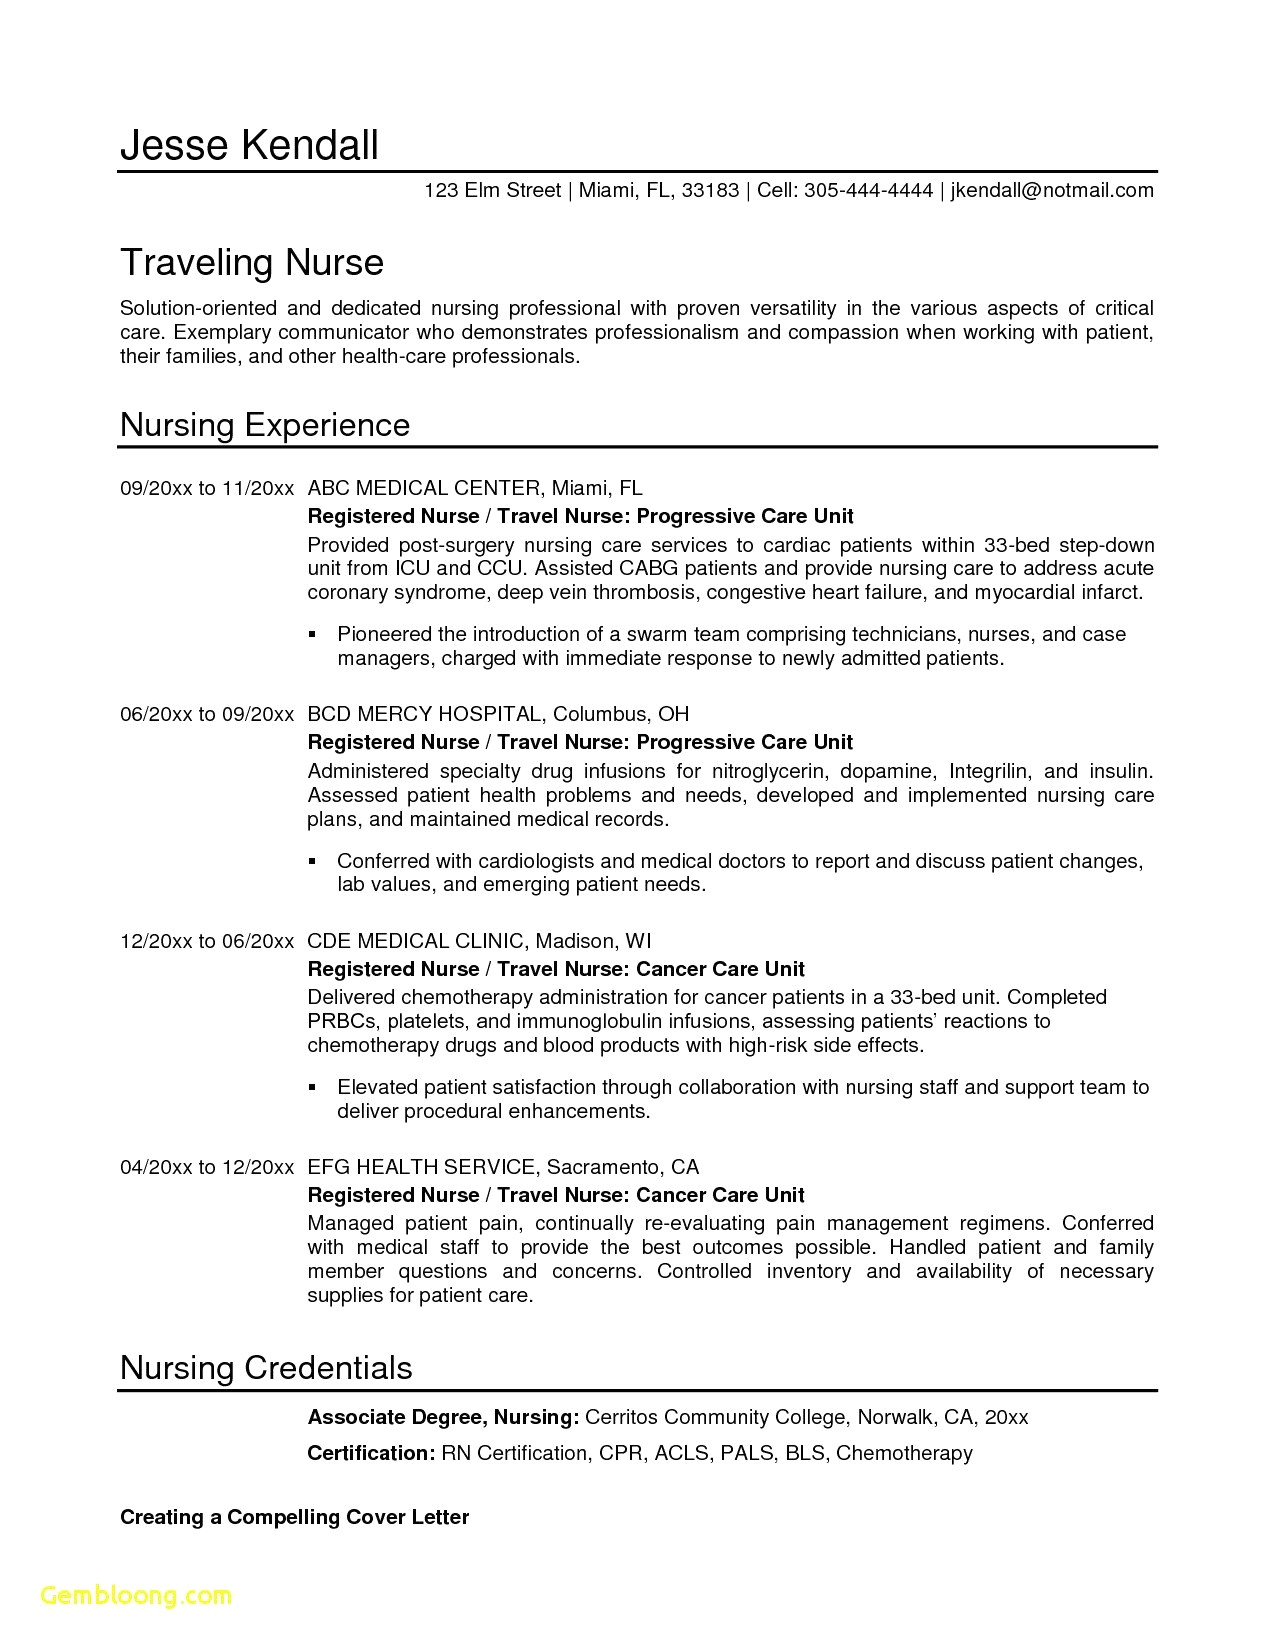 Cover Letter Design Template - 60 Design Resume Writing Certification